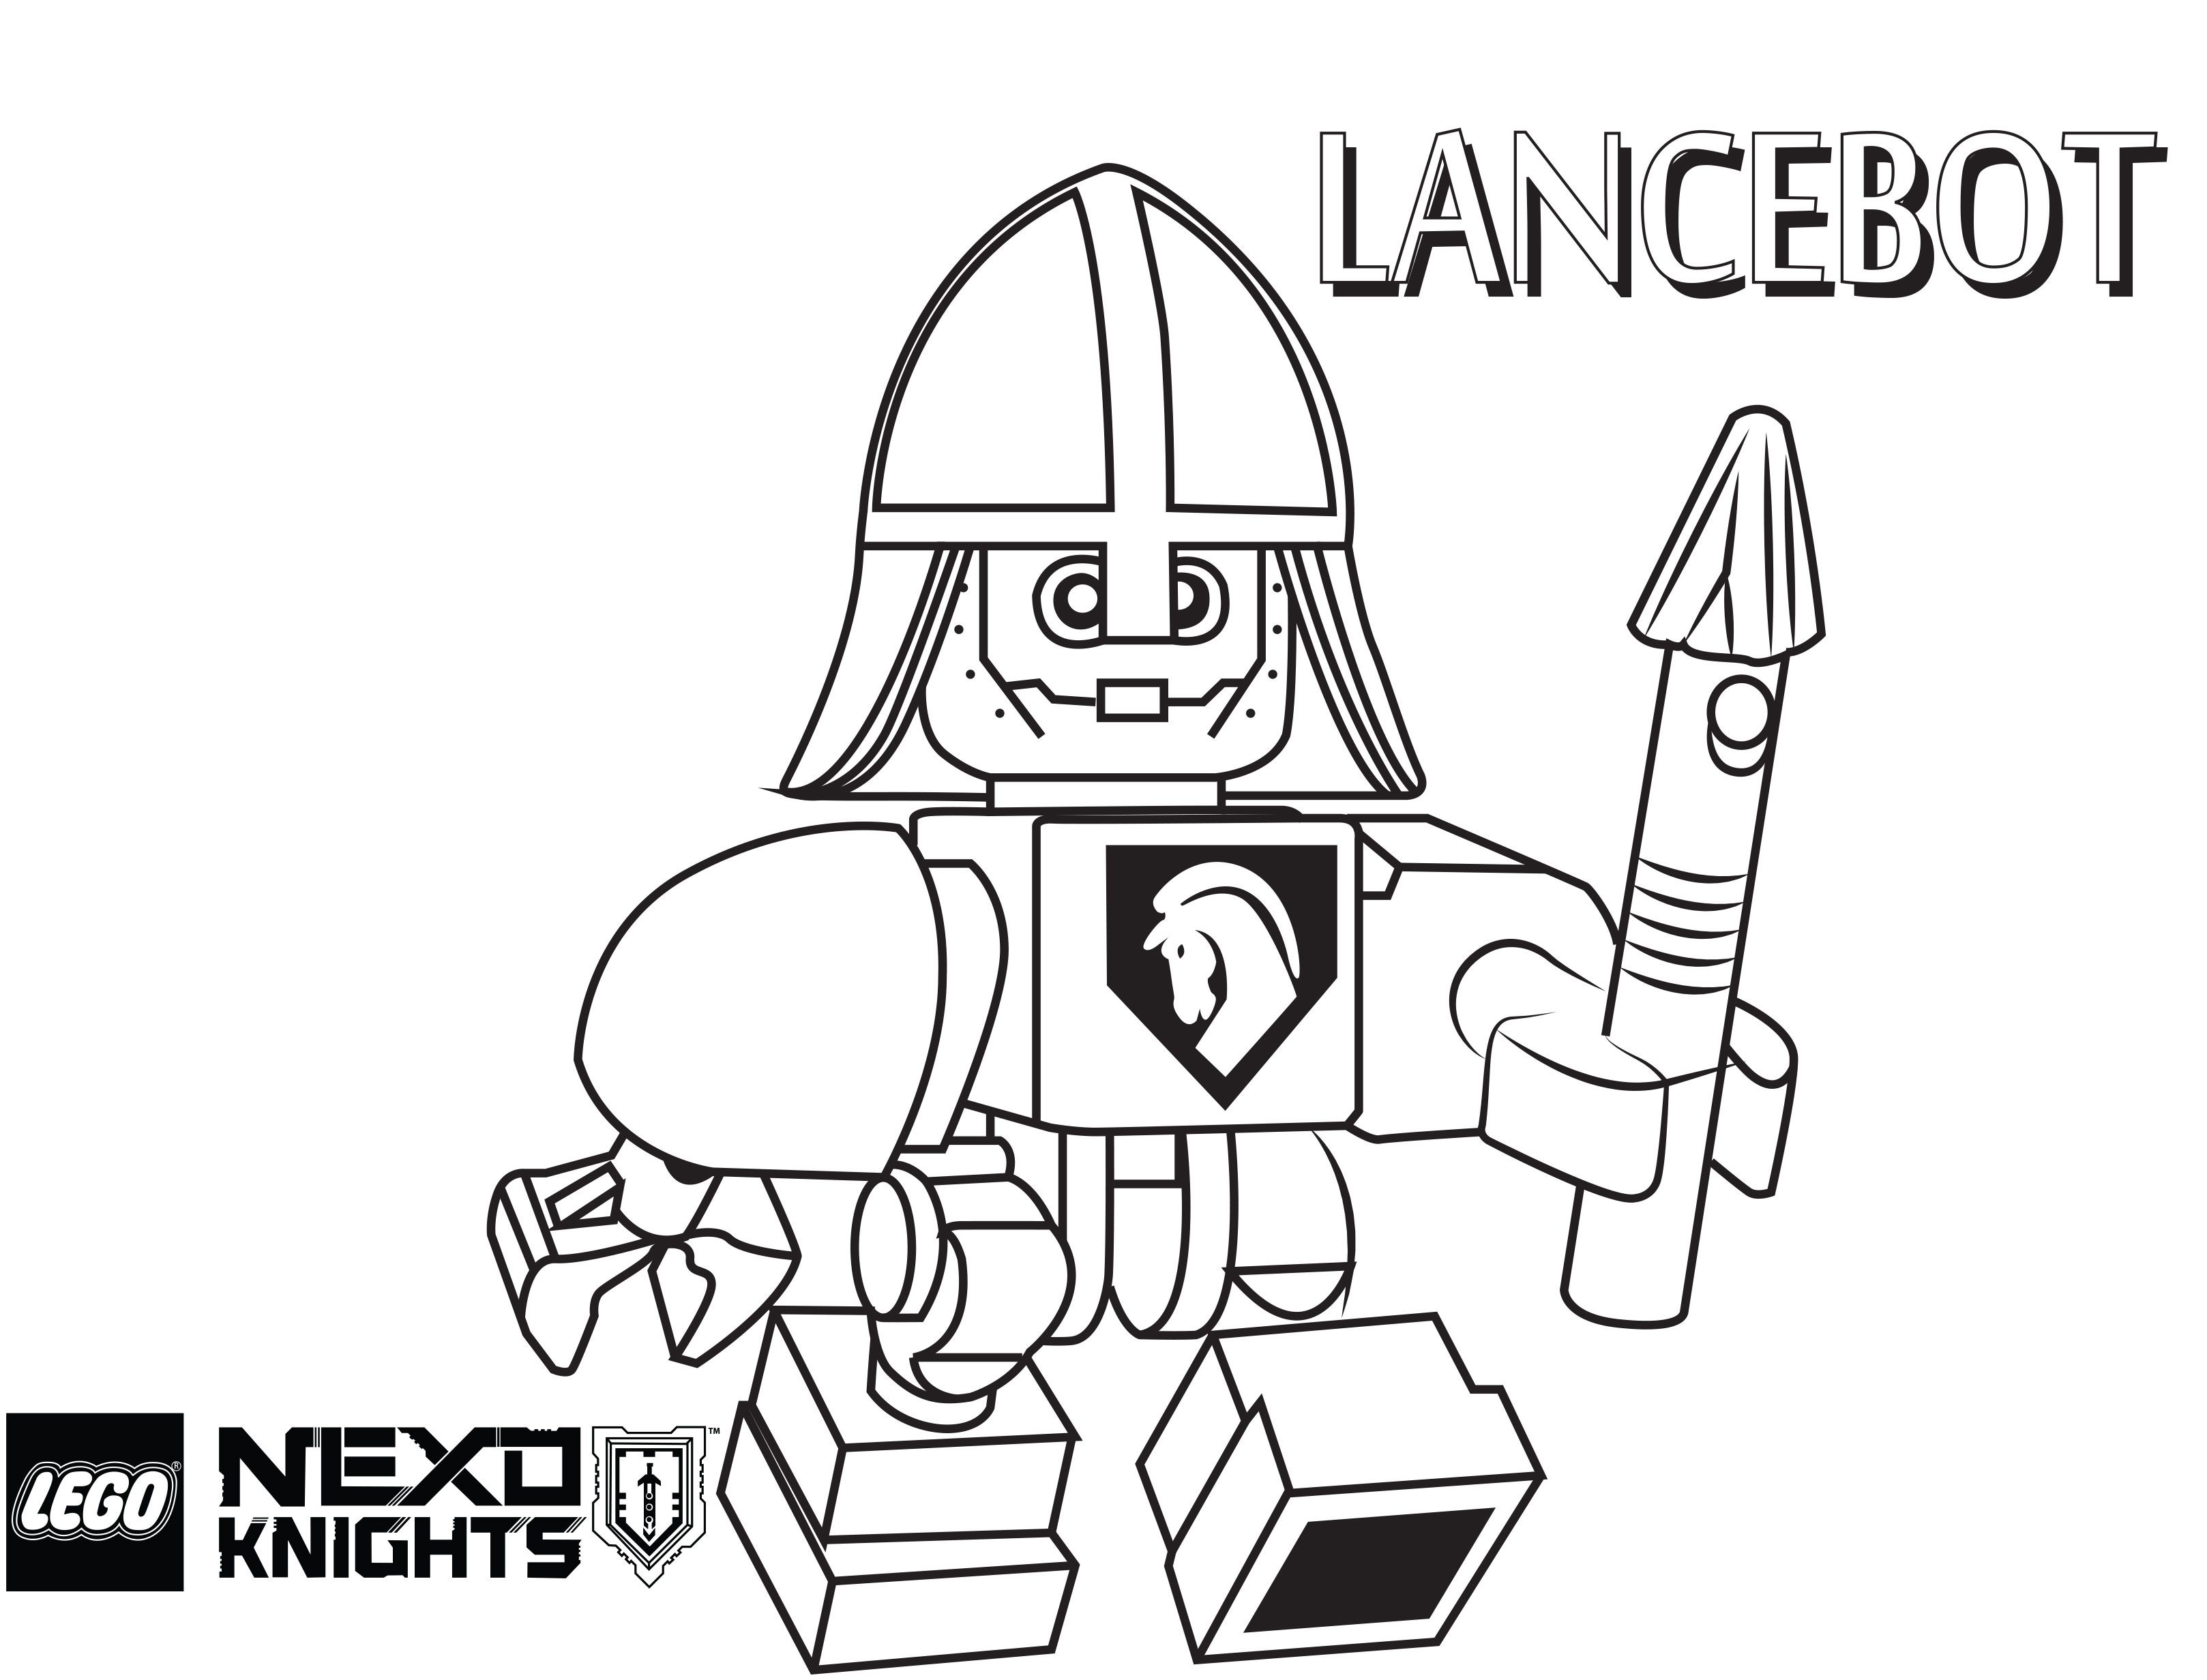 Lego Nexo Knights Coloring Pages Free Printable Lego Nexo Knights Color Sheets Lego Coloring Pages Lego Coloring Coloring Pages